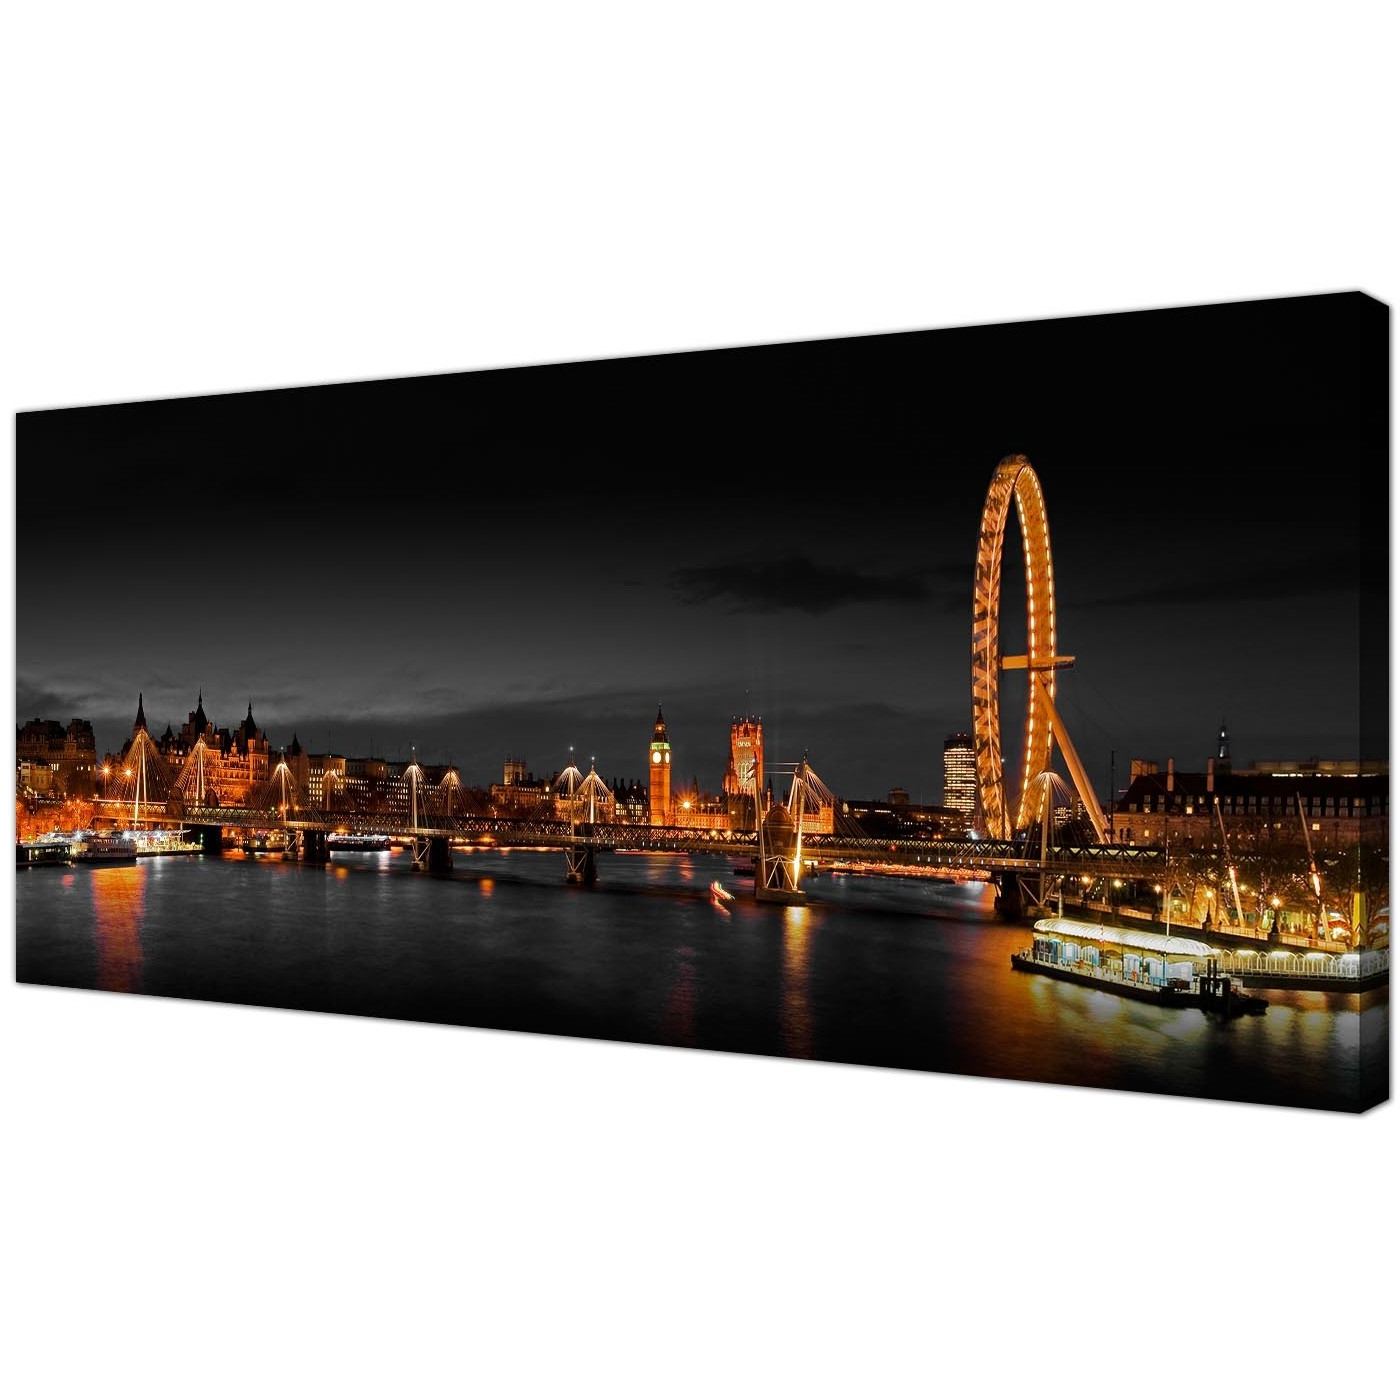 Panoramic Wall Art Intended For Most Recent Panoramic Canvas Wall Art Of London Eye At Night For Your Living Room (View 5 of 15)